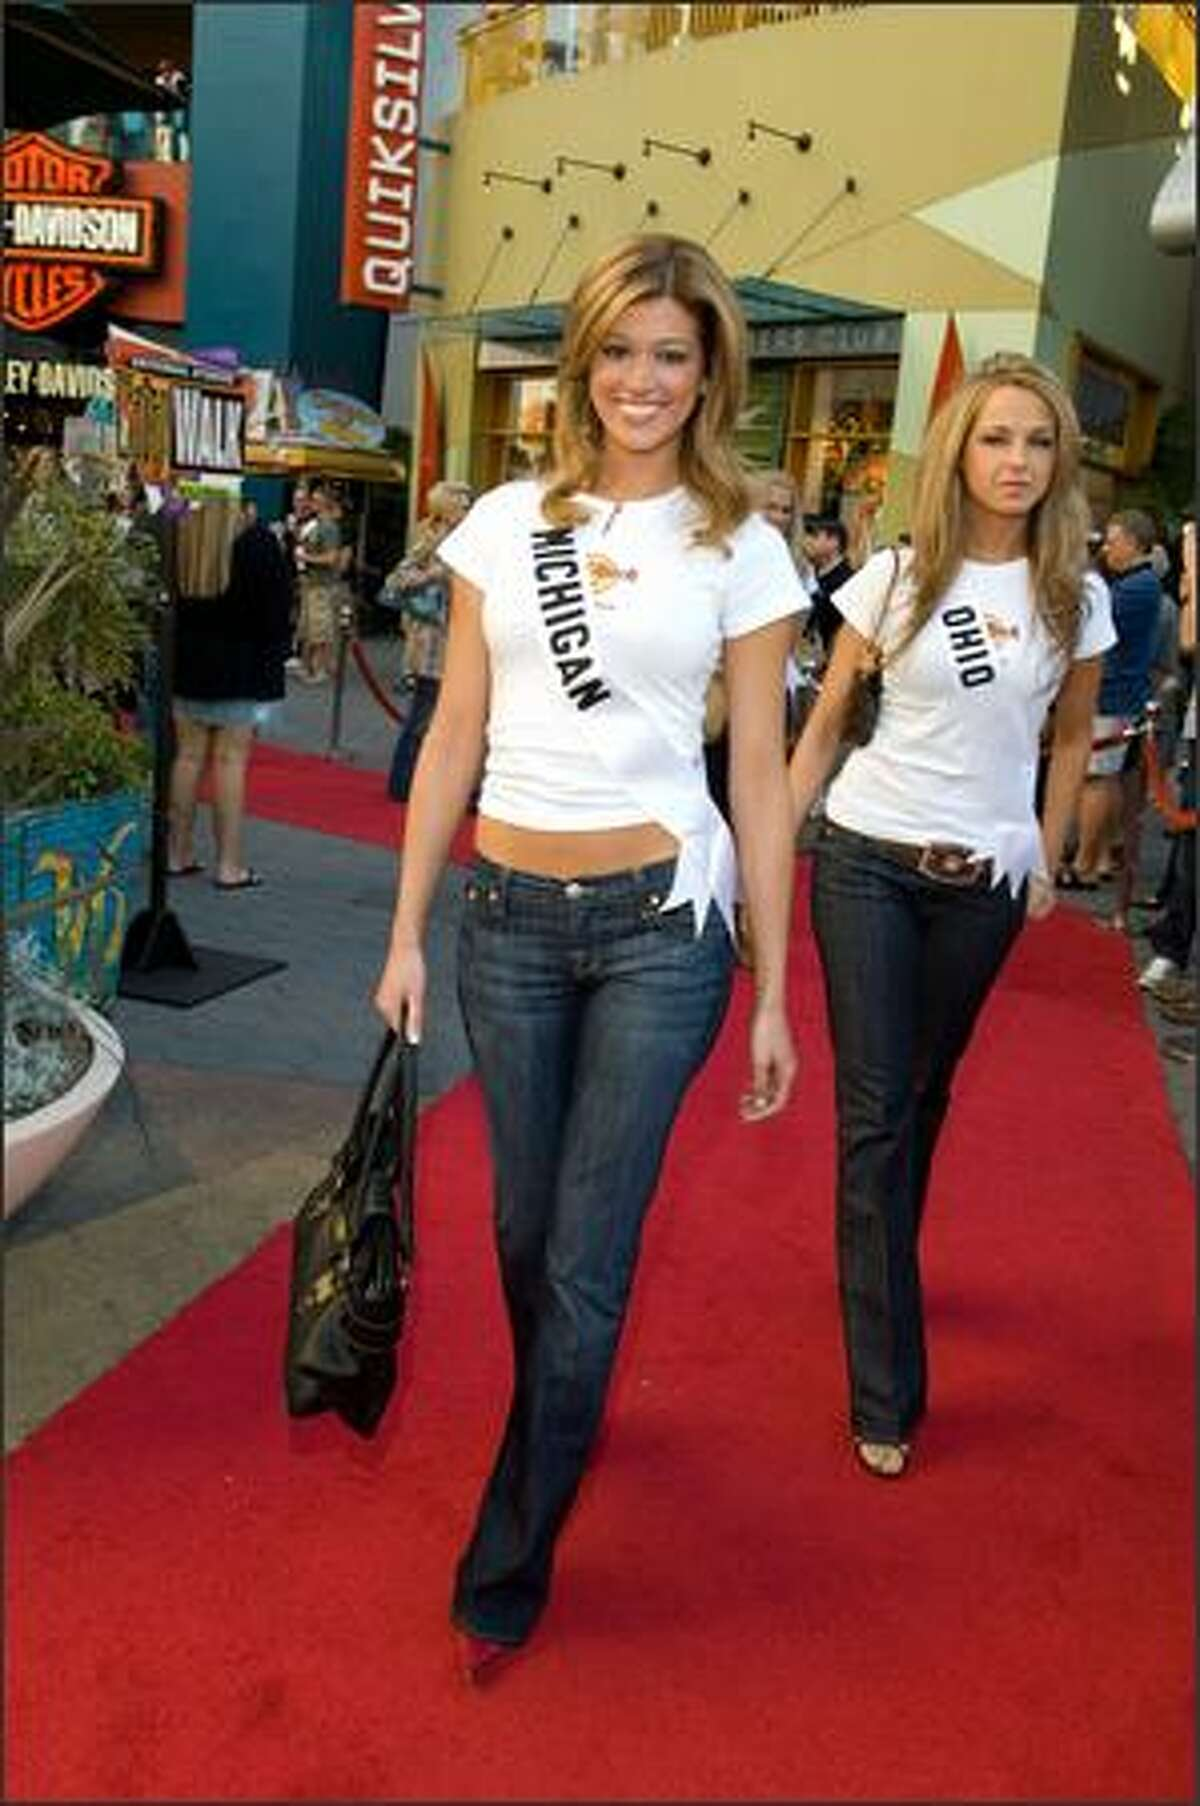 Kelly Best, Miss Michigan USA 2007, and Anna Melomud, Miss Ohio USA 2007, arrive at the Hard Rock Cafe in Universal City, Calif., on March 12.